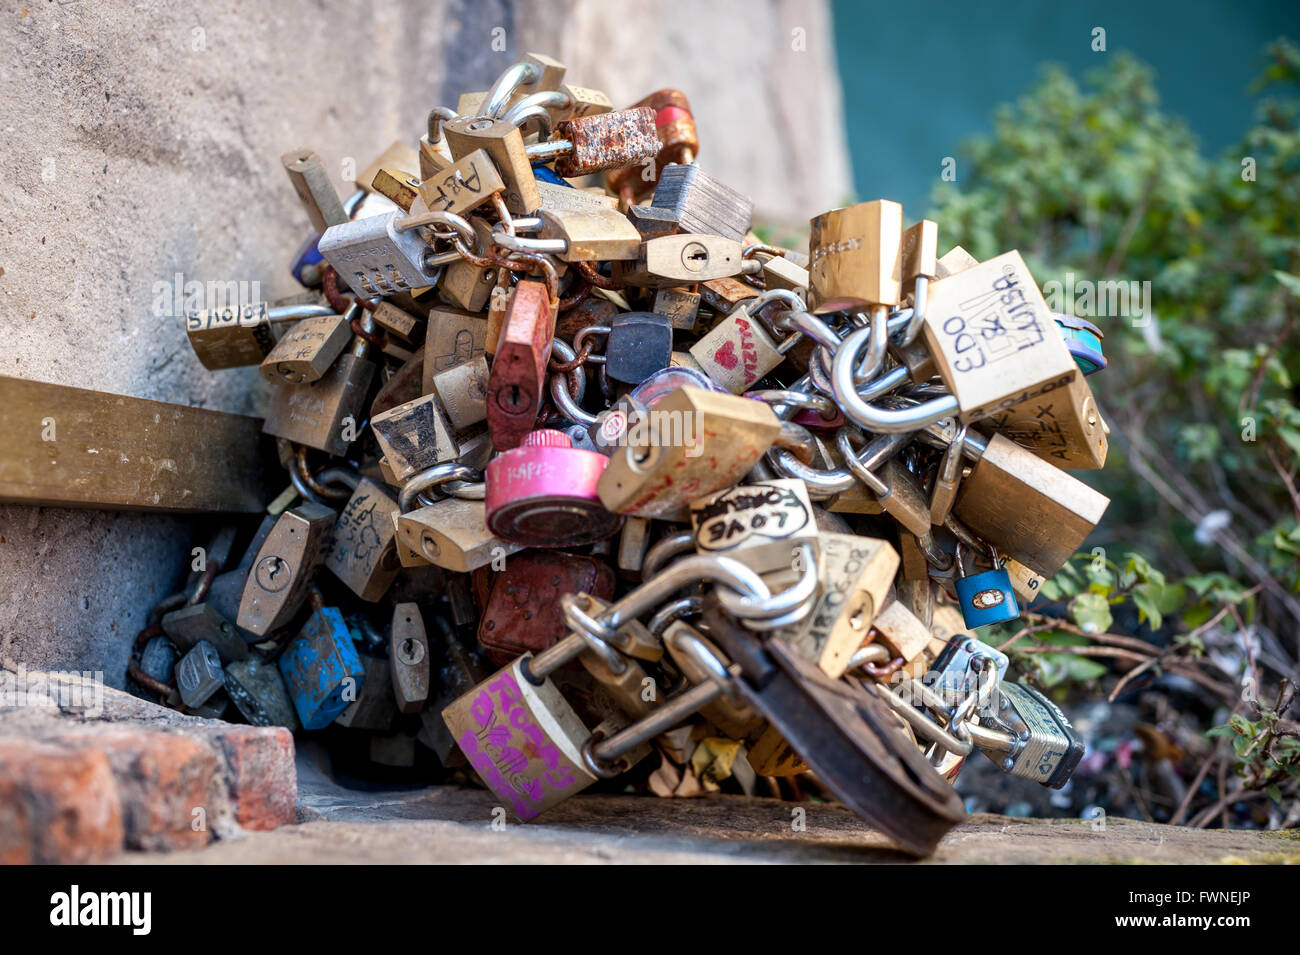 Lovers' locks on the Ponte Vecchio in Florence, Italy. - Stock Image